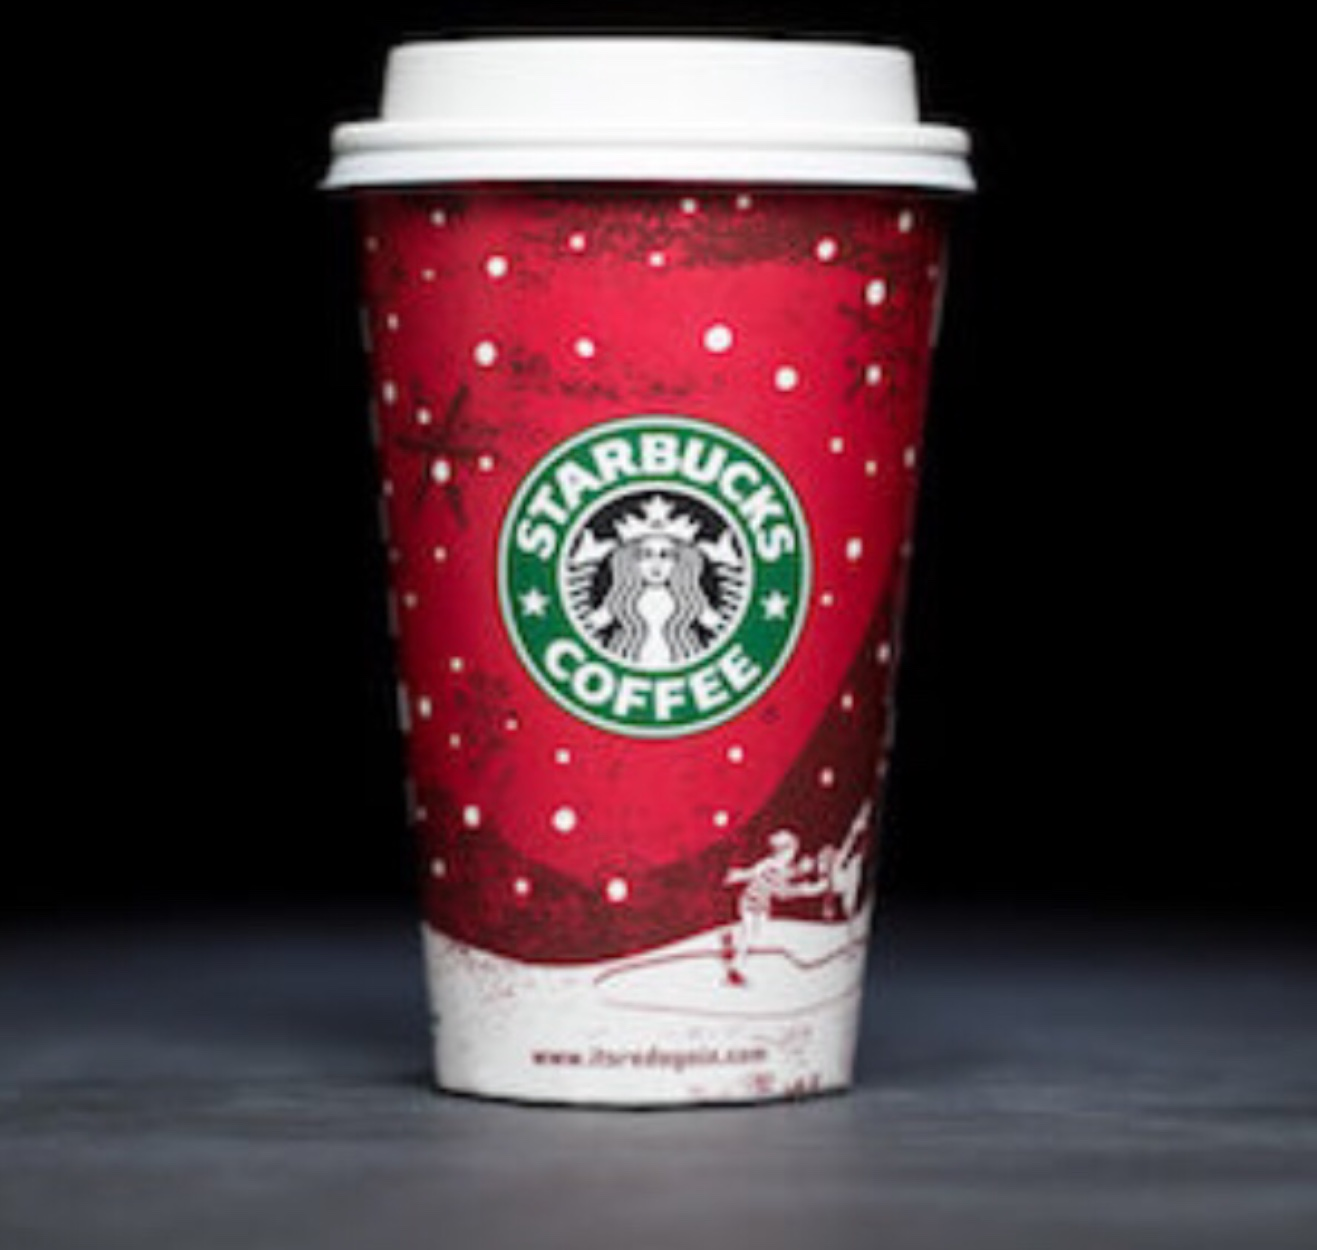 This is one of the holiday Starbucks cup from 2007. One of the many cups with controversy because of its Christmas symbols like the reindeer, snowflakes, and pine trees.  Photo used with permission from Joshua Trujillo